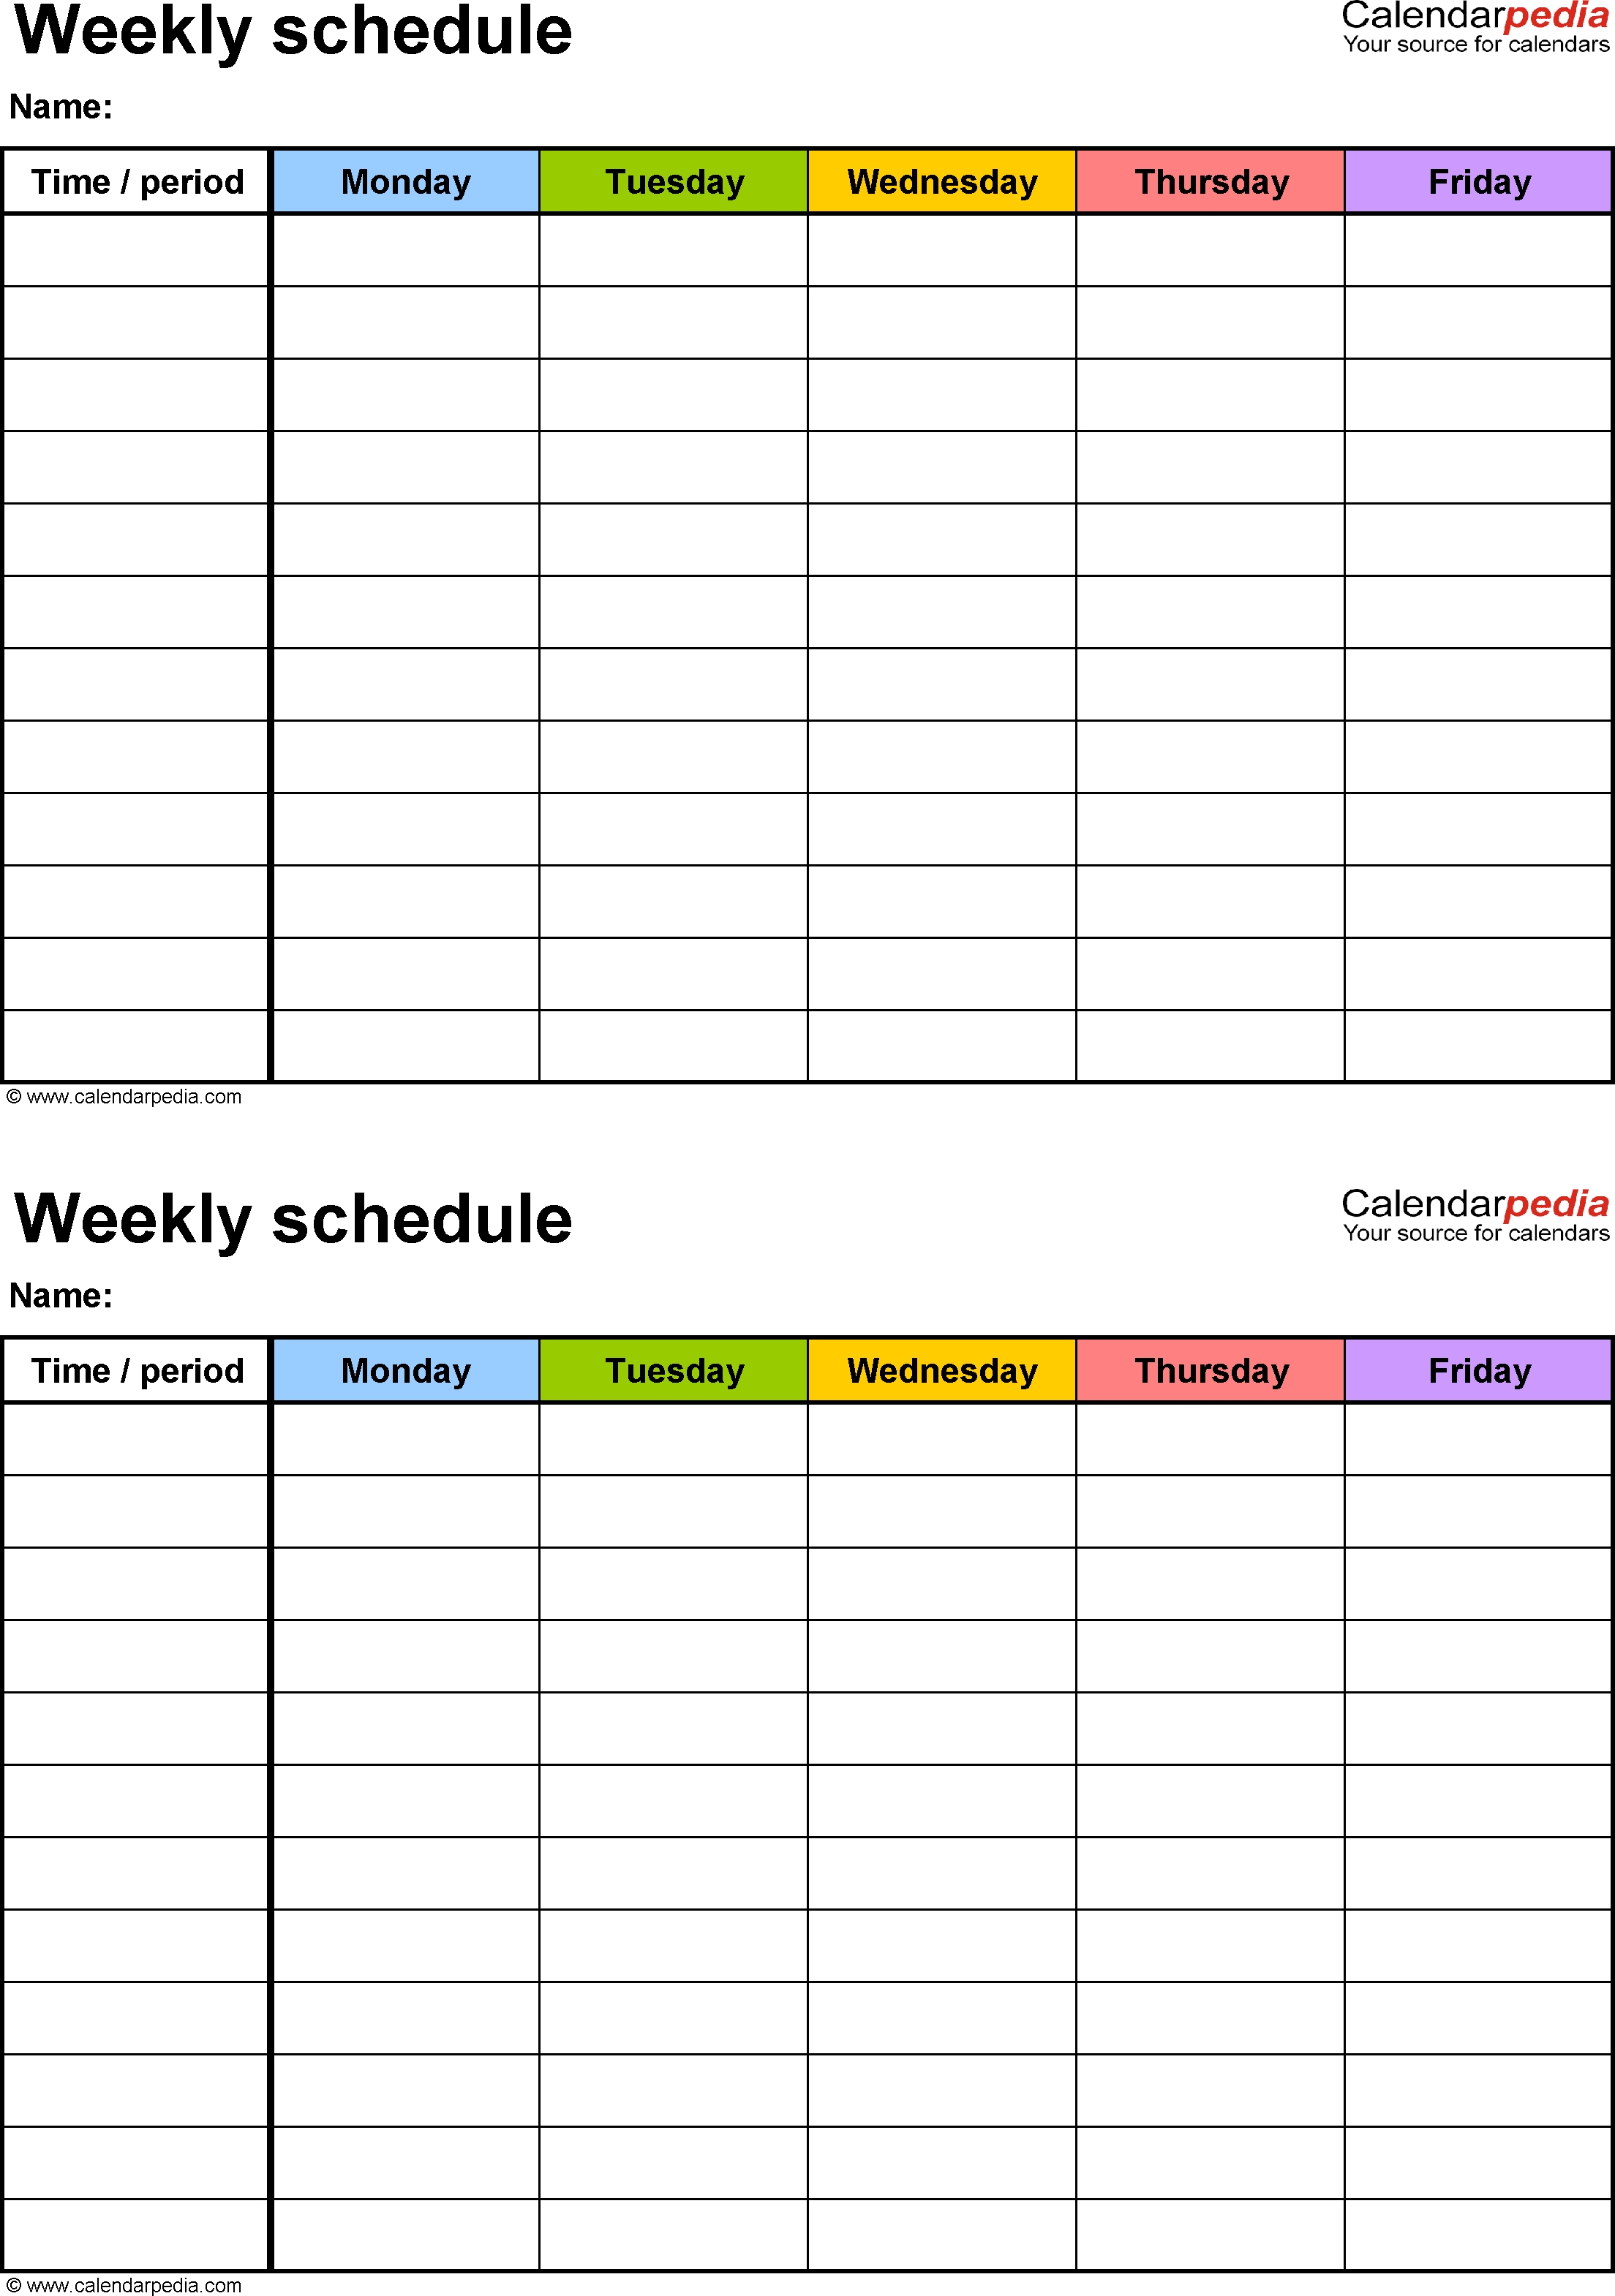 Weekly Schedule Template For Excel Version 3: 2 Schedules On One regarding One Week Calendar Template Printable